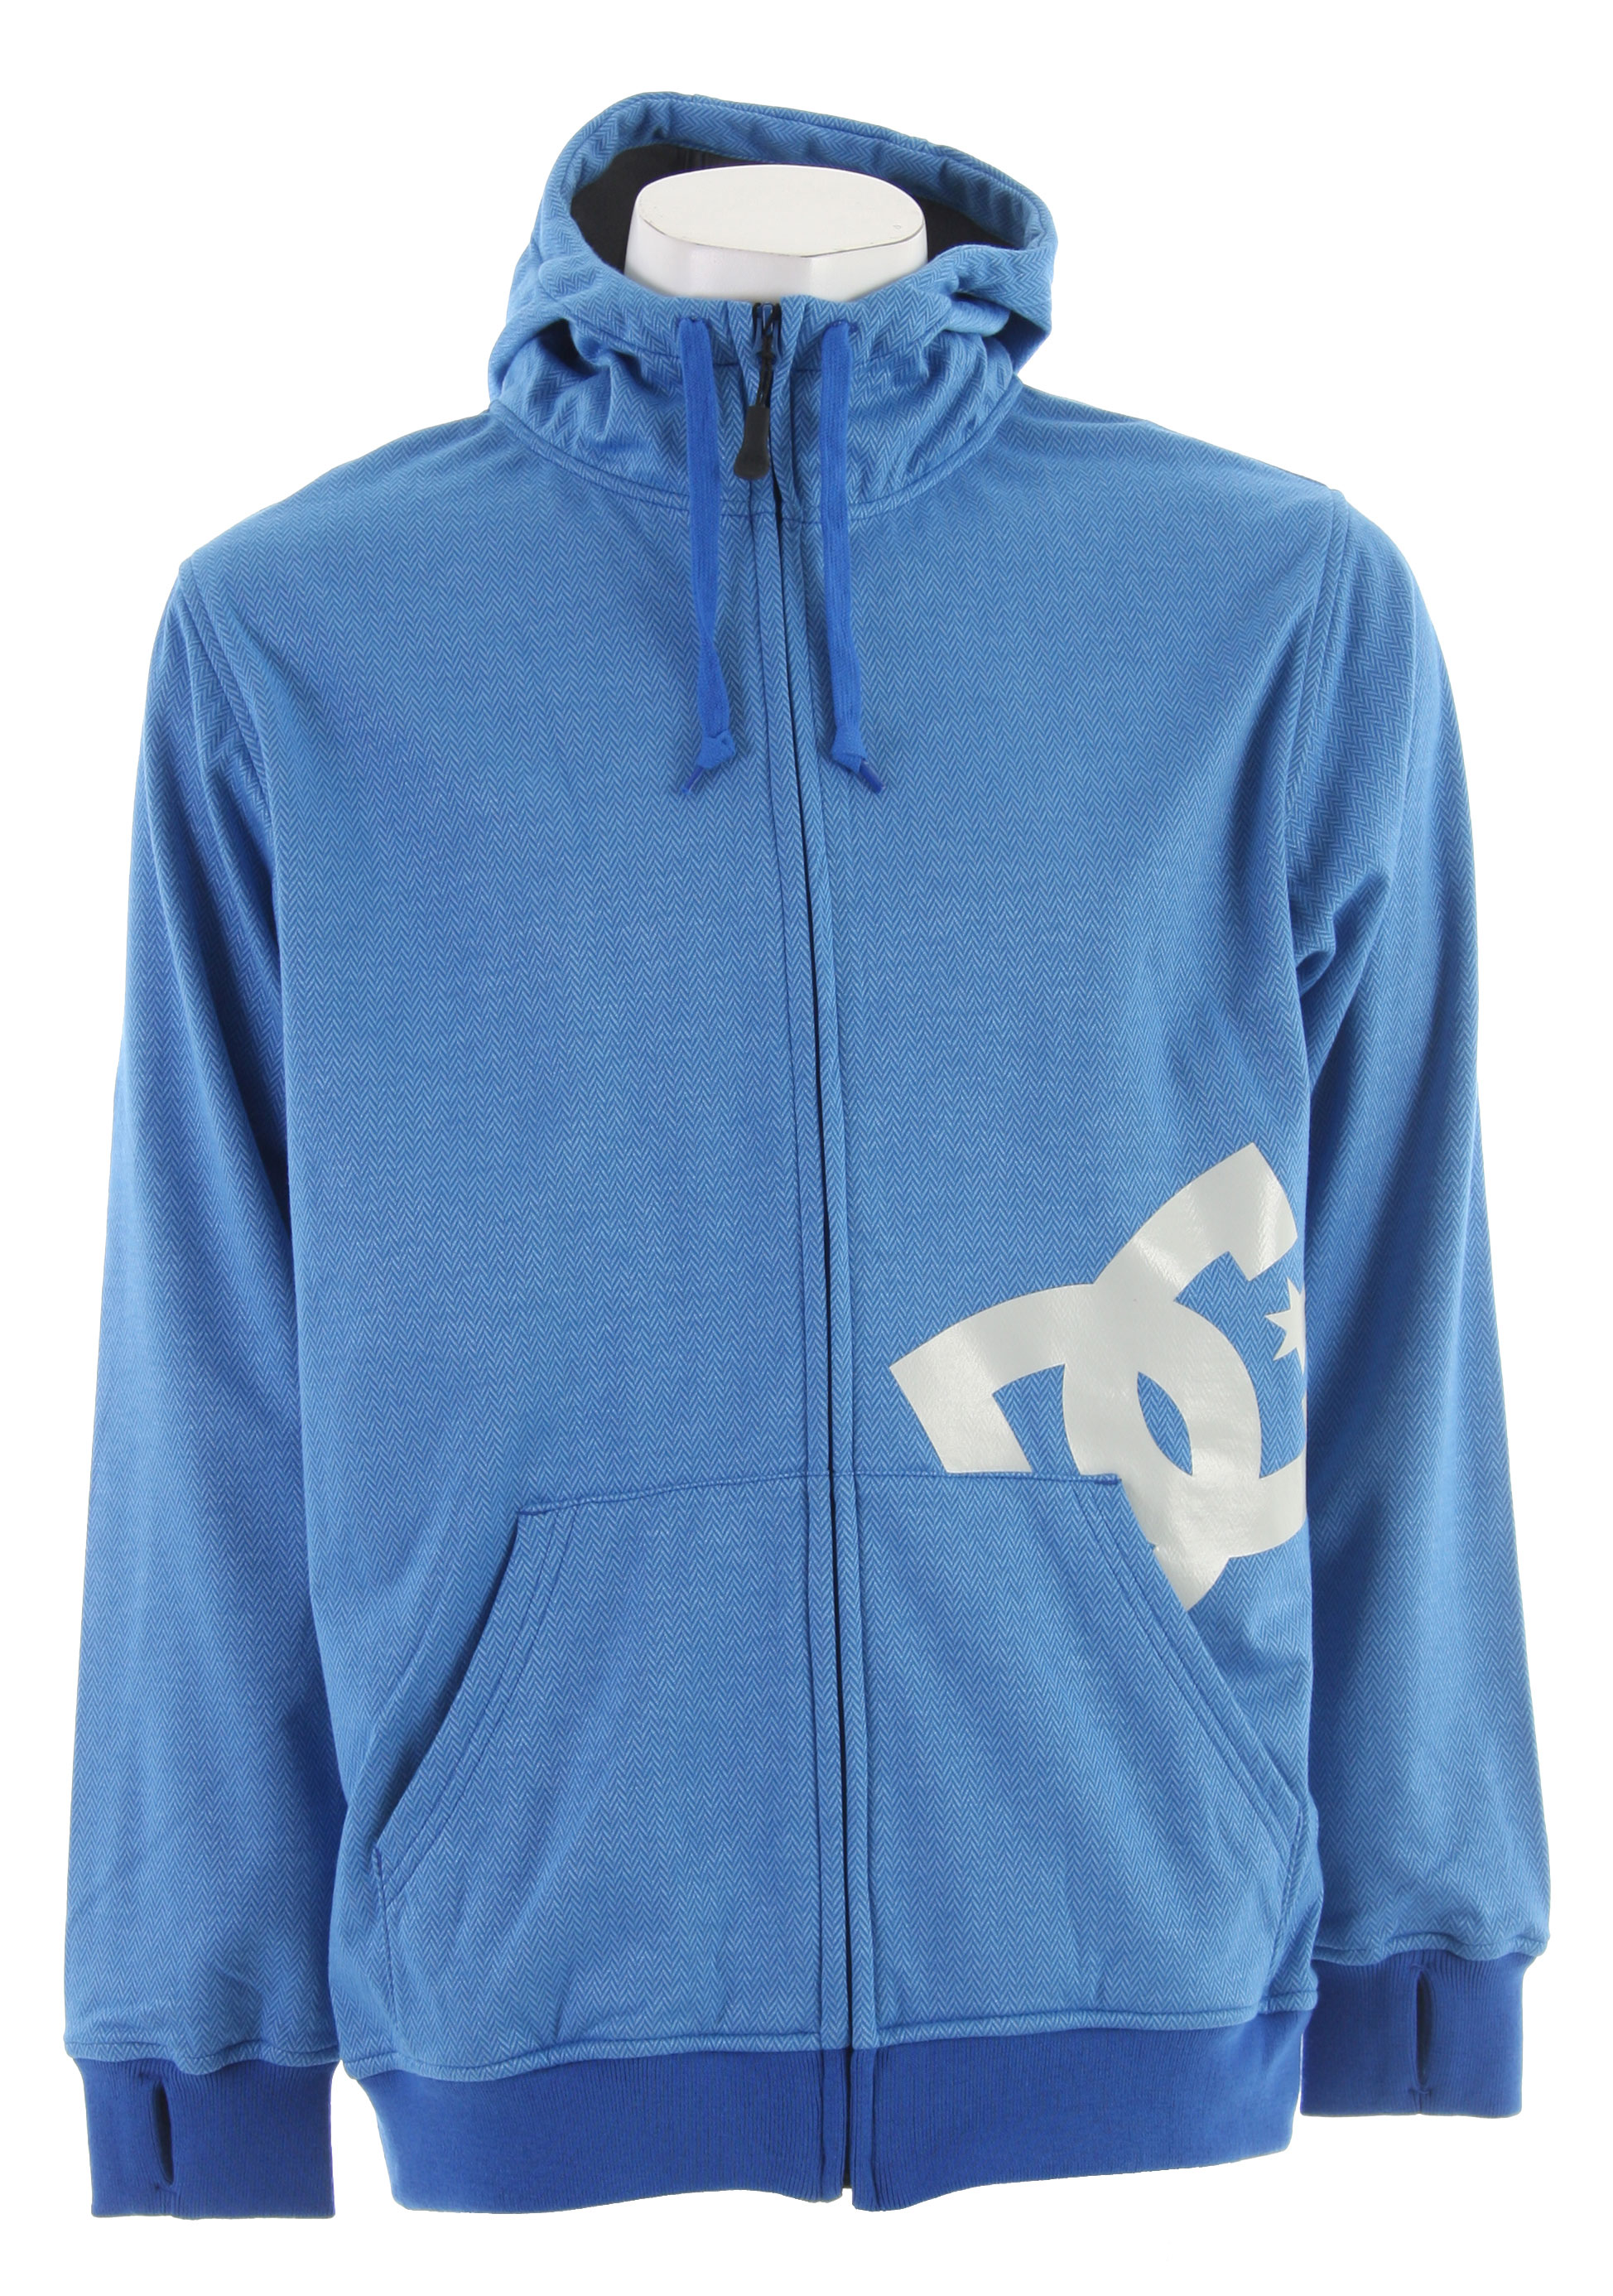 Skateboard DC Stover Hoodie - $48.85